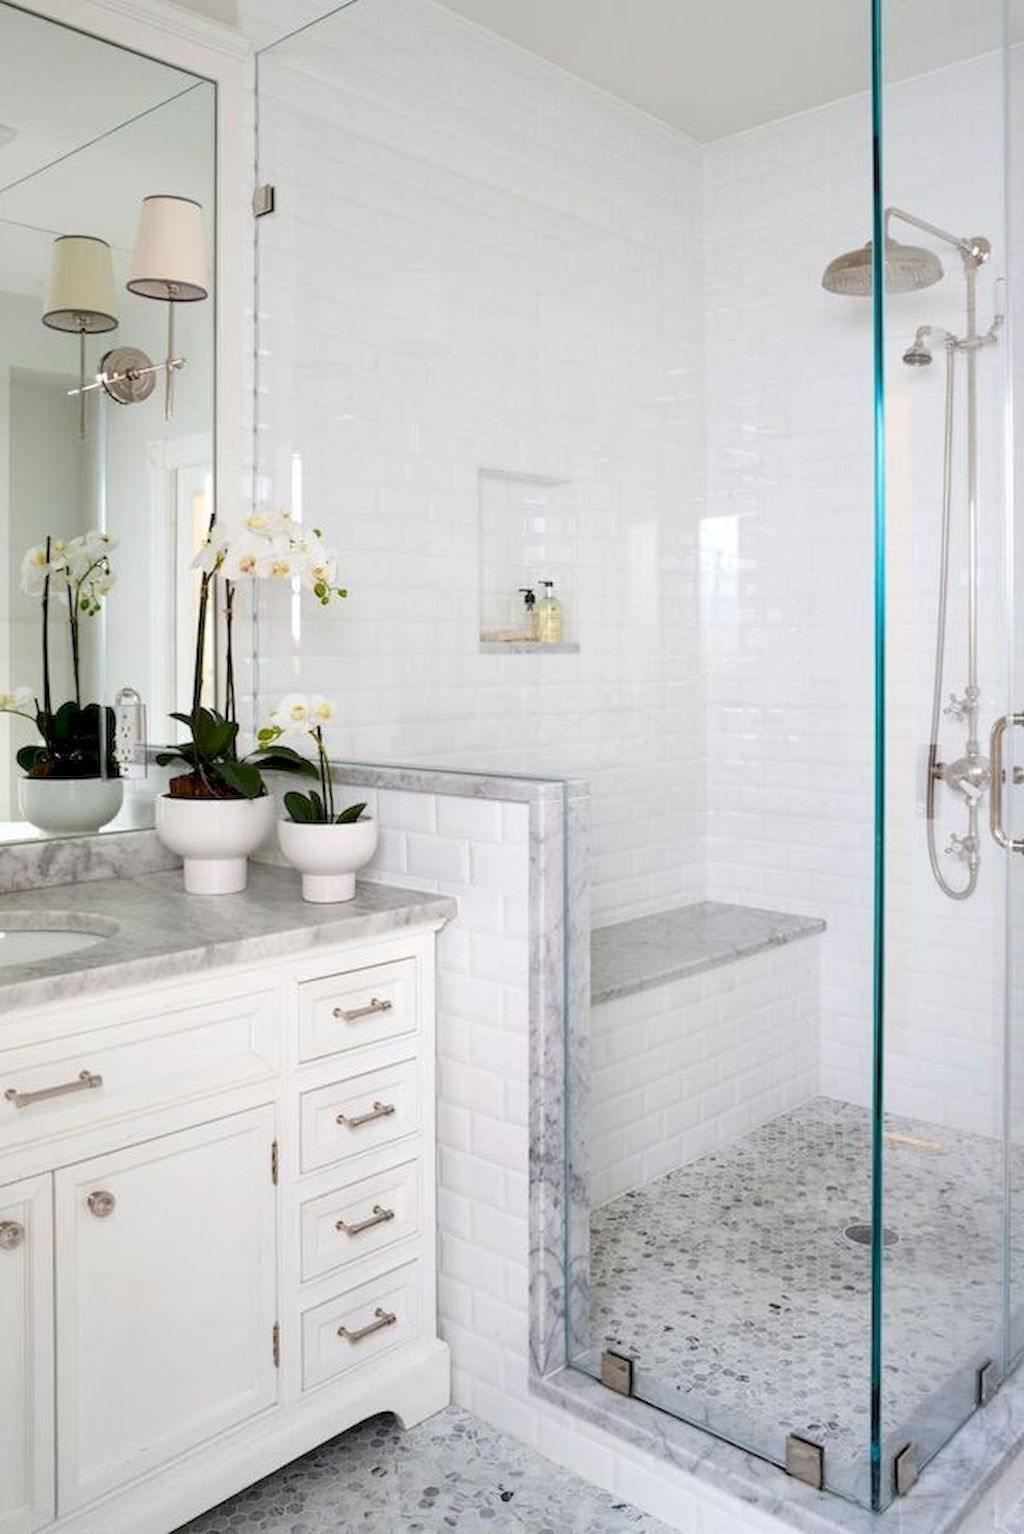 55 Cool Small Master Bathroom Remodel Ideas | Master bathroom ... Images Of Small Master Bathrooms on small closet, small lounge, small small bathrooms, small zen bathrooms, small dinning room, small master suite, small game room, small luxury bathrooms, small attic, small handicap bathrooms, small master deck, small sauna, small powder room, small bathrooms with shower only, small master bath ideas, small shower and bath combo, small bedroom, small master room, small hot tub, small master shower,